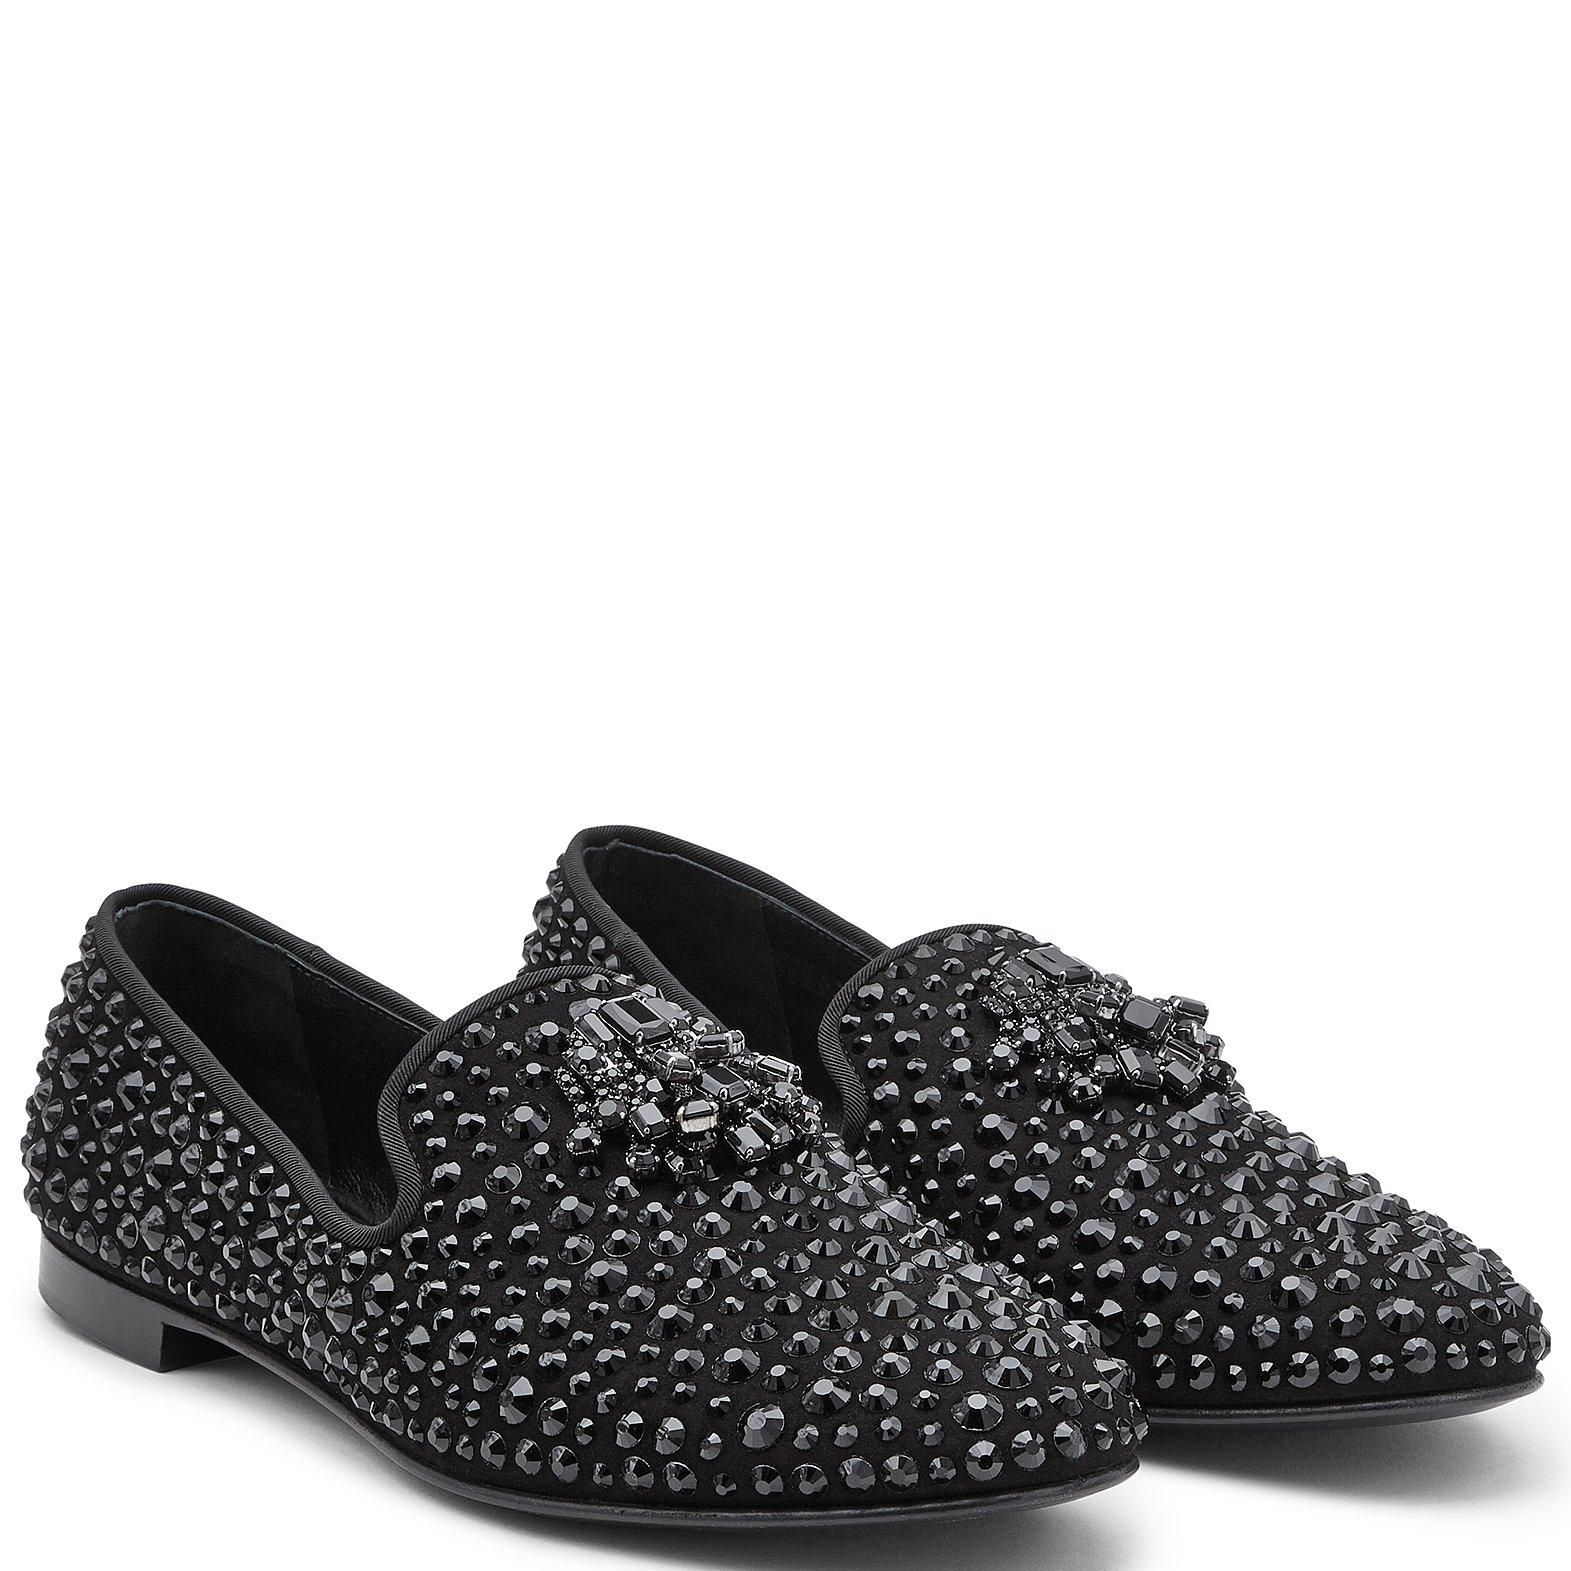 7e69ee16e1132 Blaze - Loafers - Black | Giuseppe Zanotti | For The Groom | Black ...